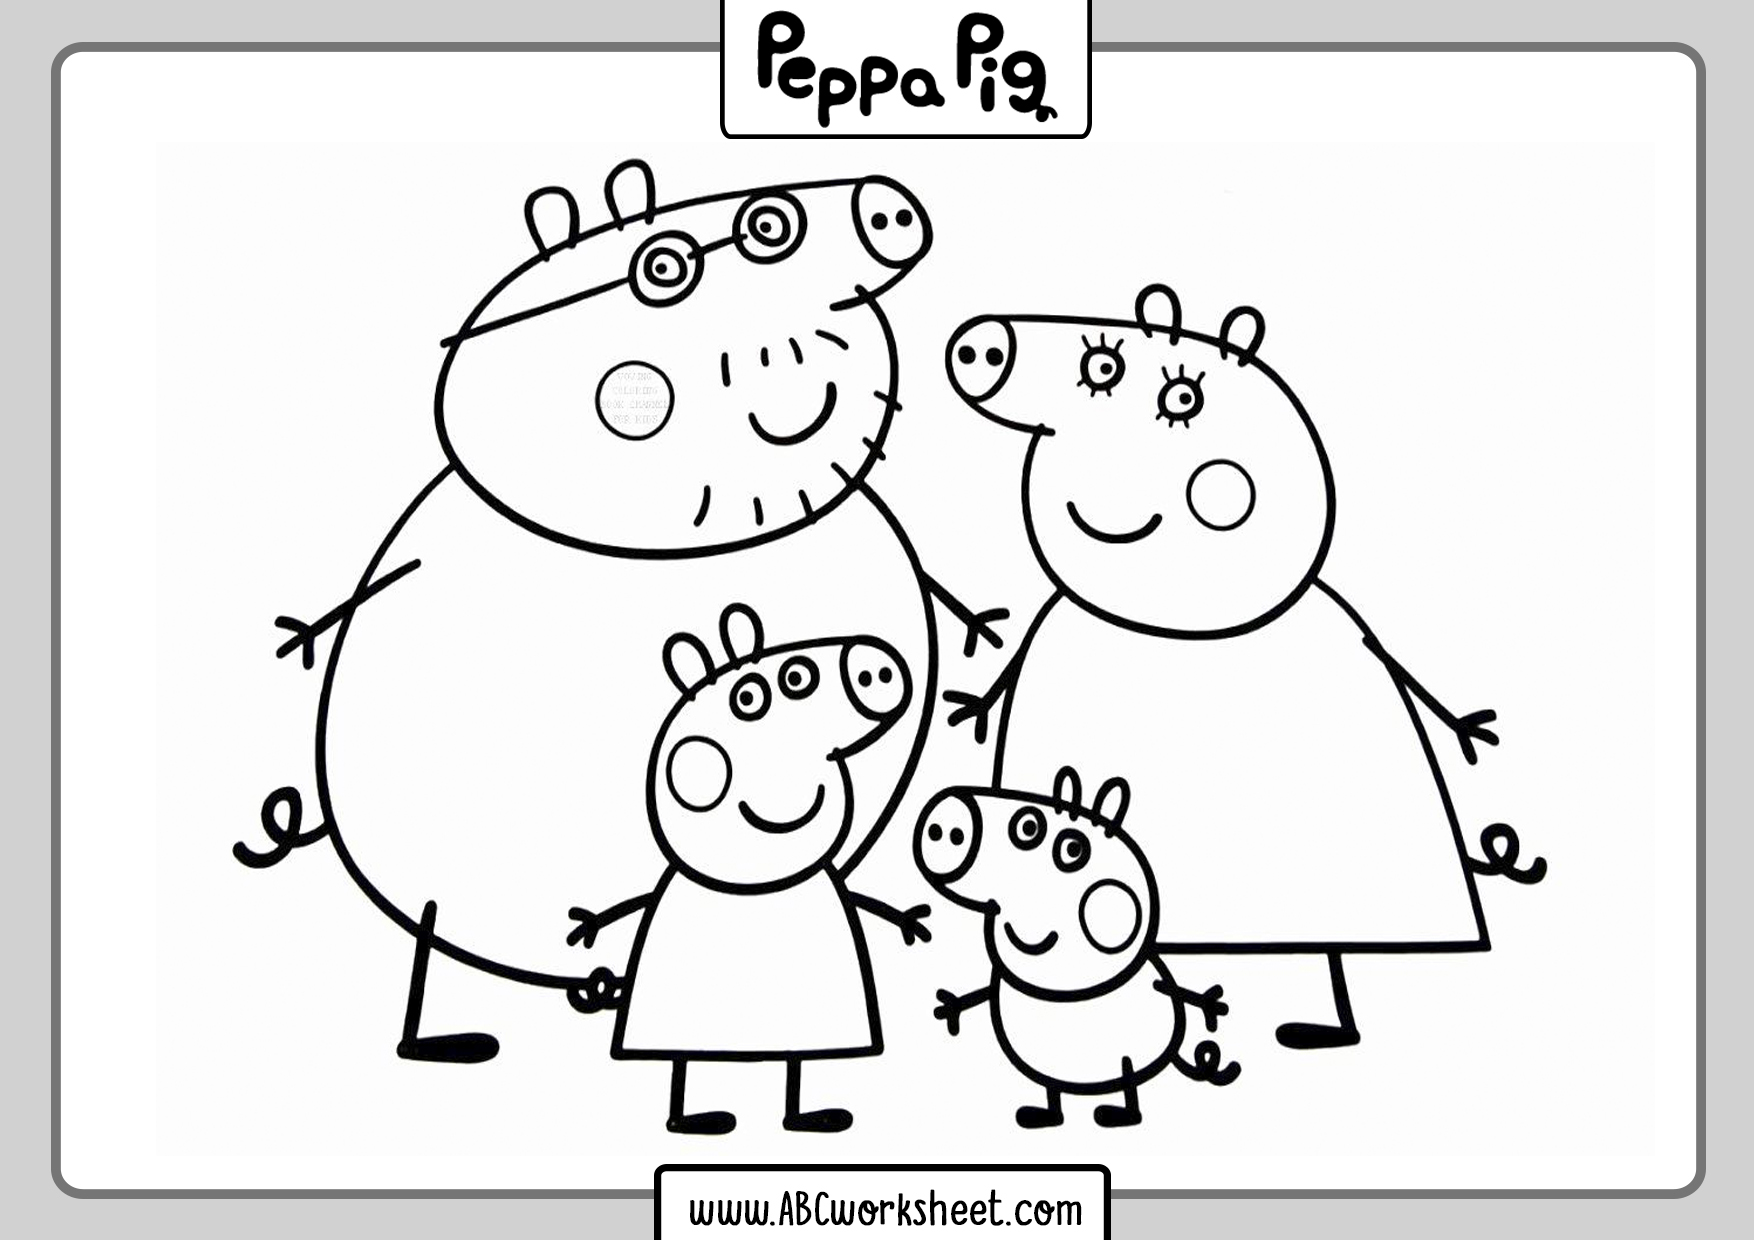 Kids Peppa Pig Coloring Pages